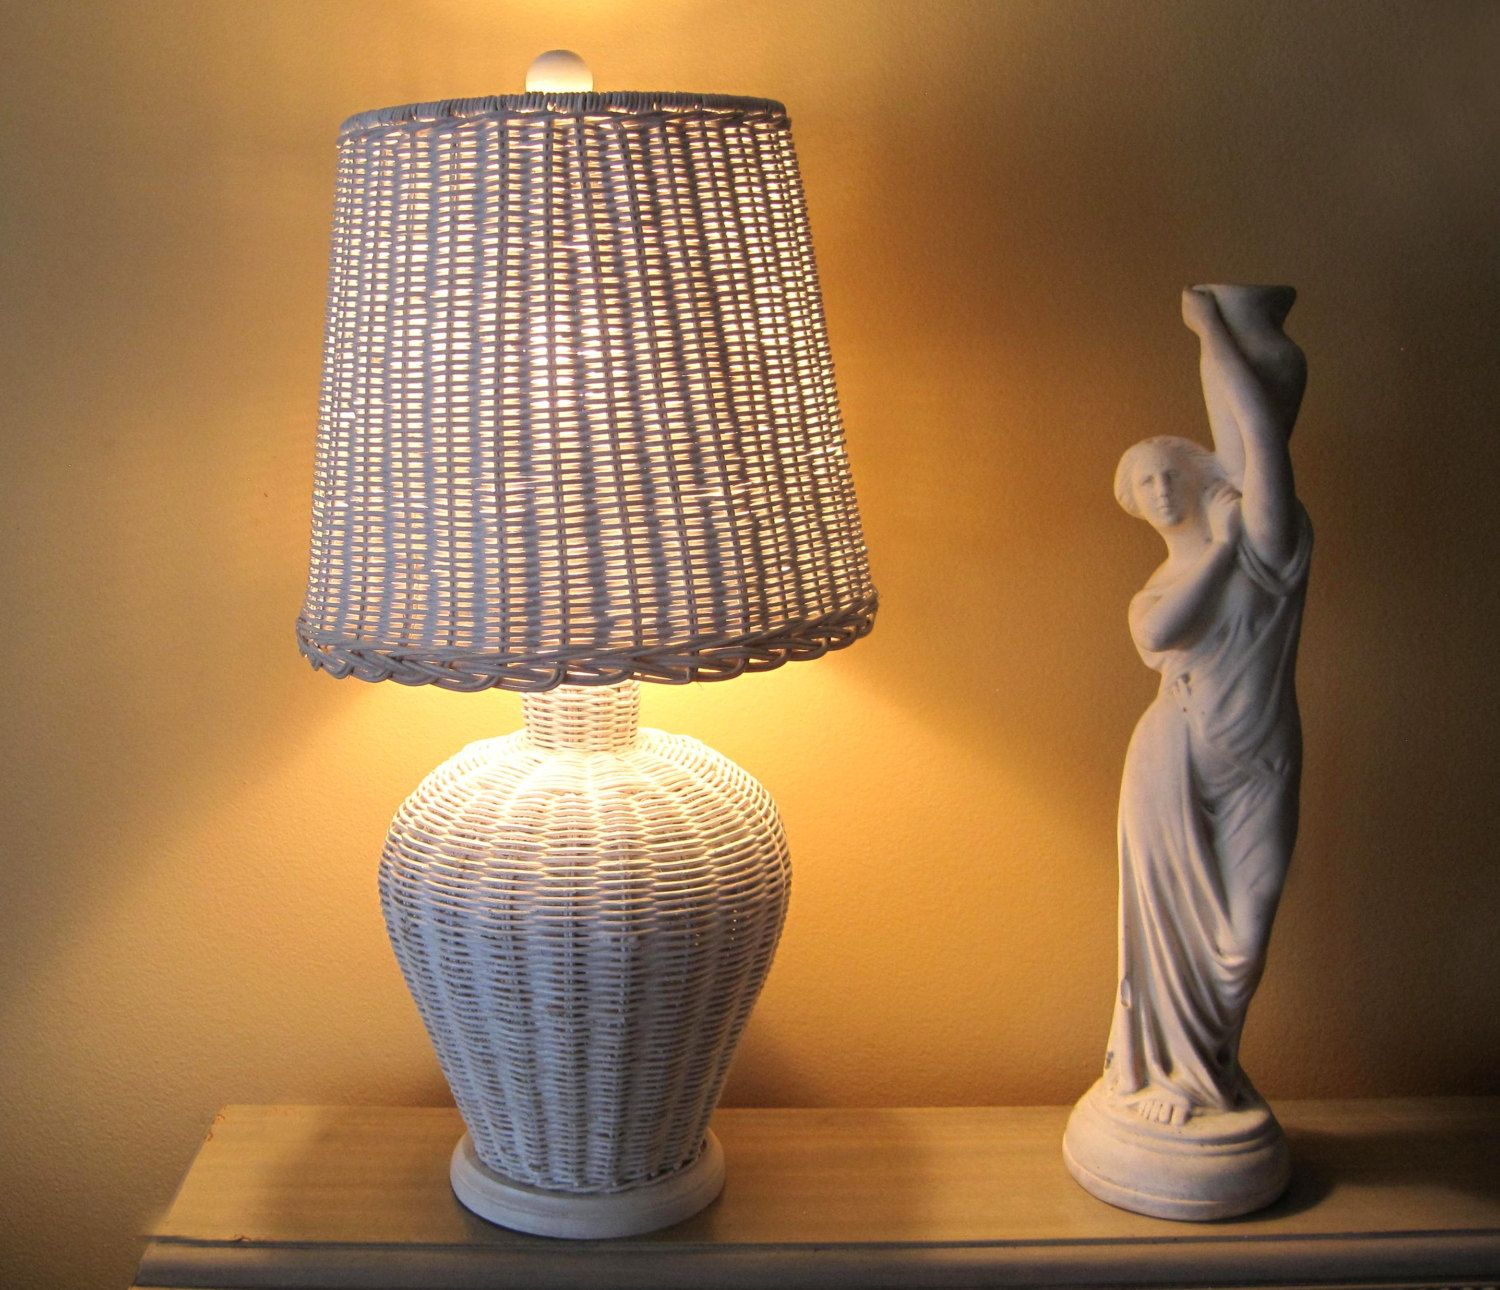 white wicker rattan table lamp and lampshade cottage chic white wicker rattan table lamp and lampshade cottage chic vintage lamp ginger jar shape base home decor white lamp white lampshade